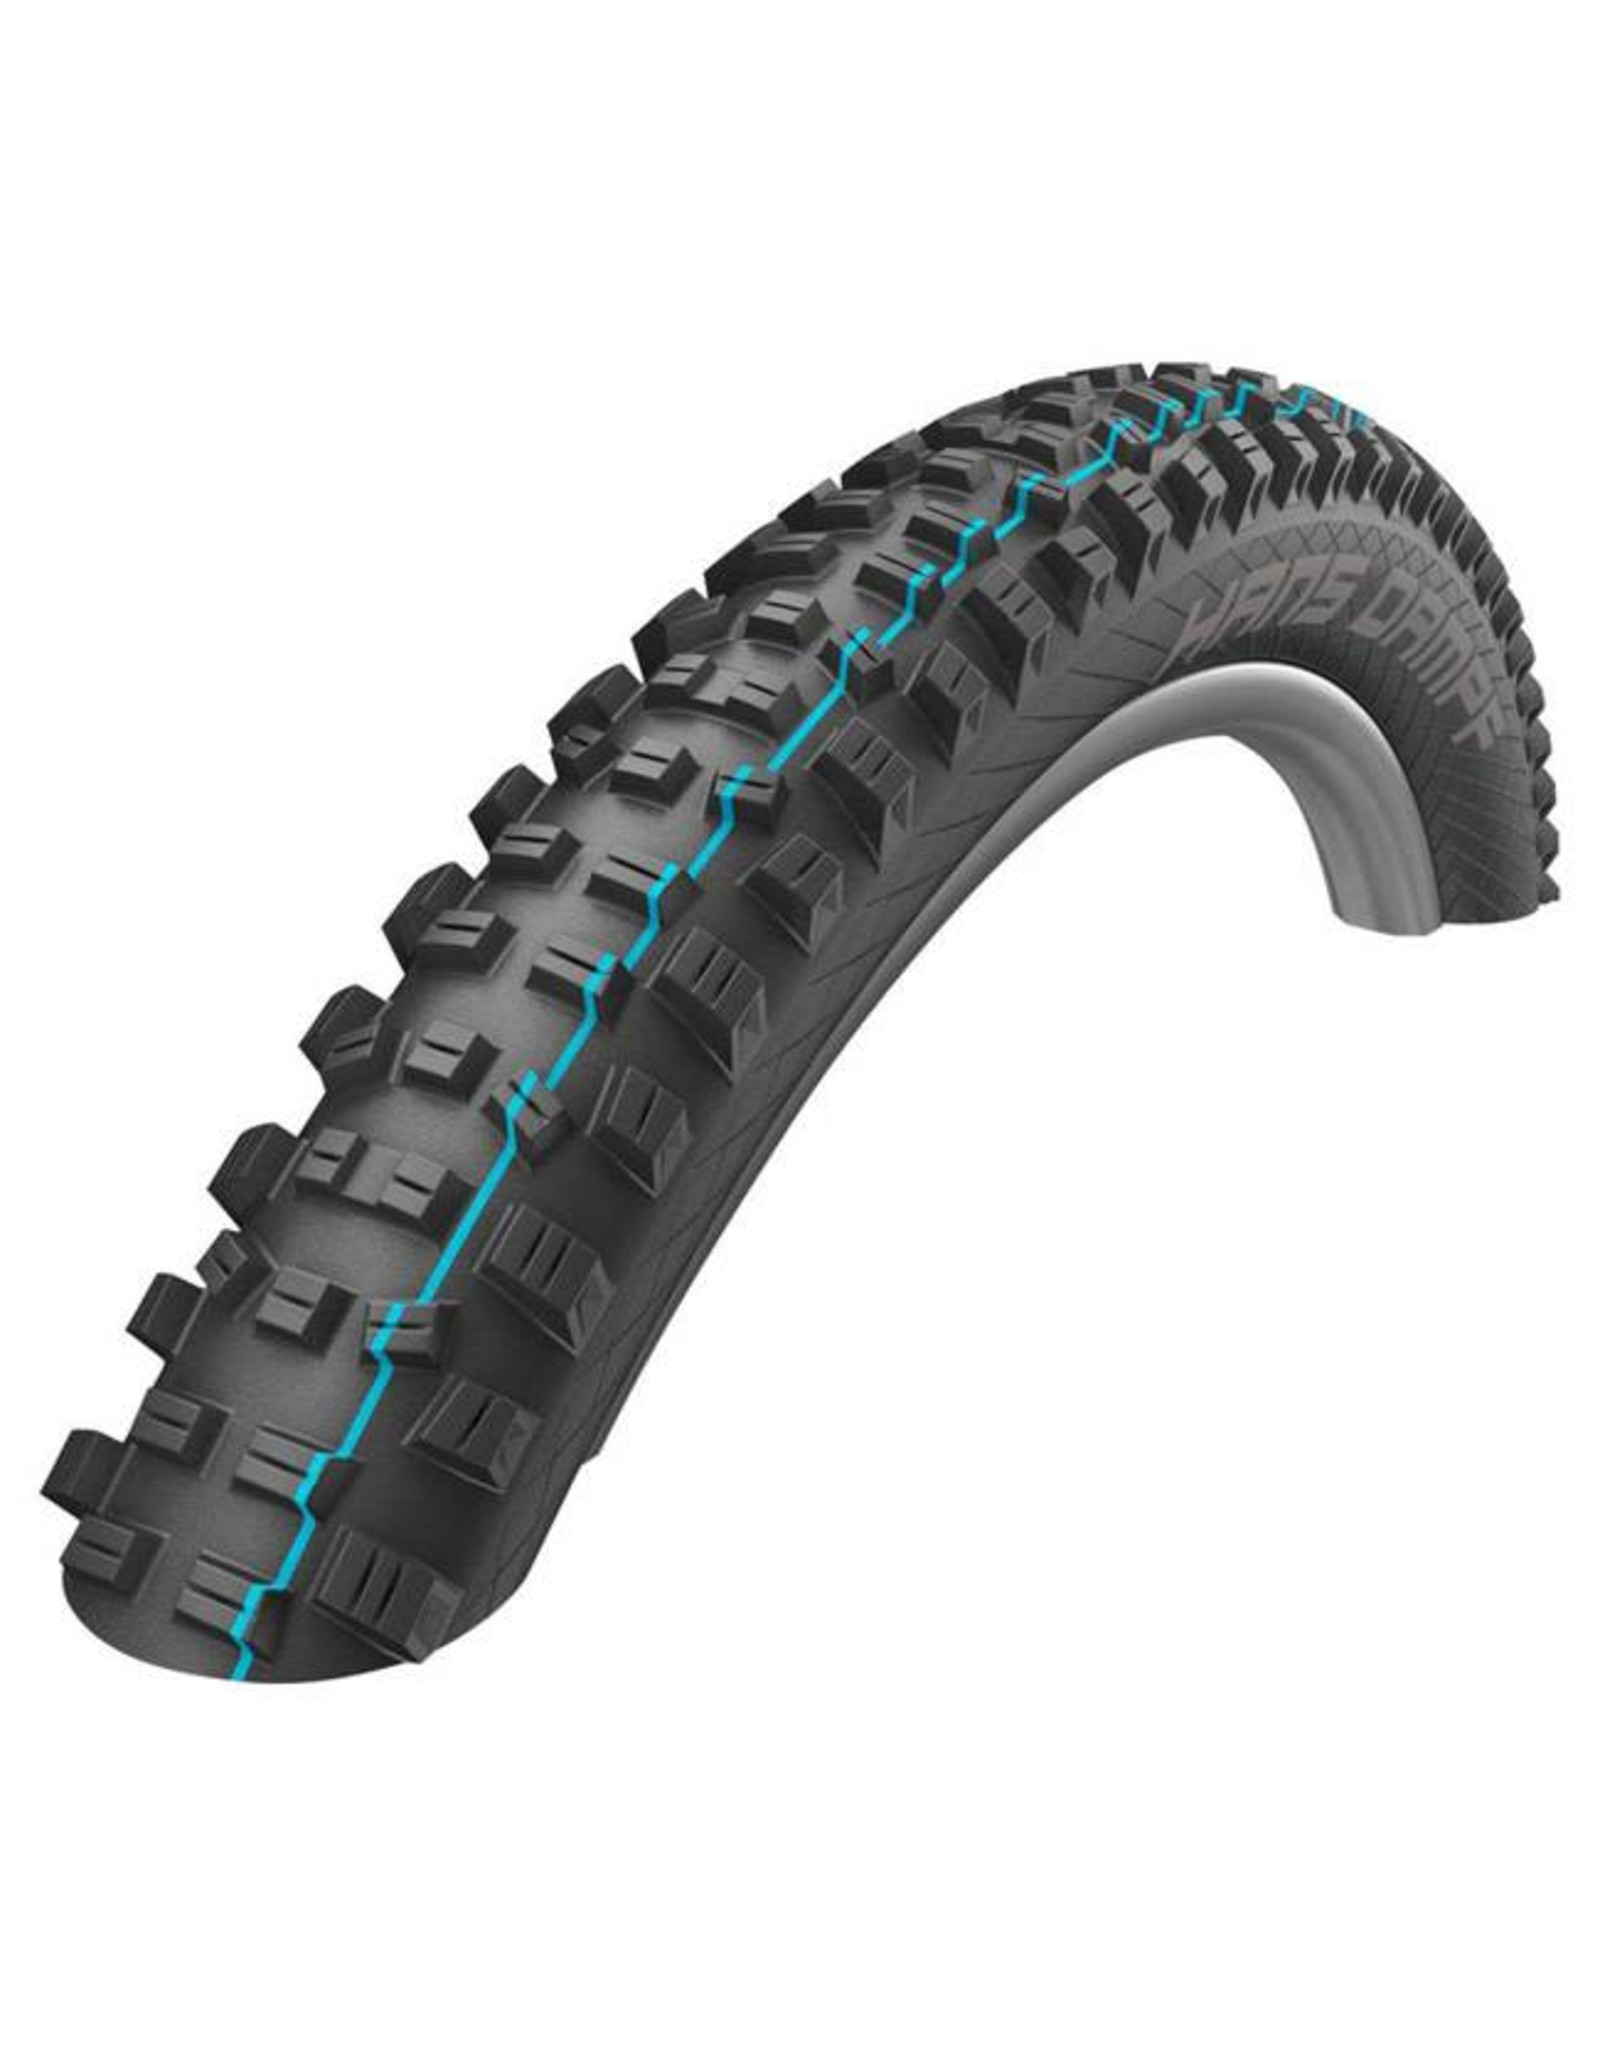 "Schwalbe Schwalbe Hans Dampf Tire: 27.5+ 2.60"", Folding Bead, Evolution Line, Addix Speed Compound, SnakeSkin, Tubeless Easy, Apex, Black"